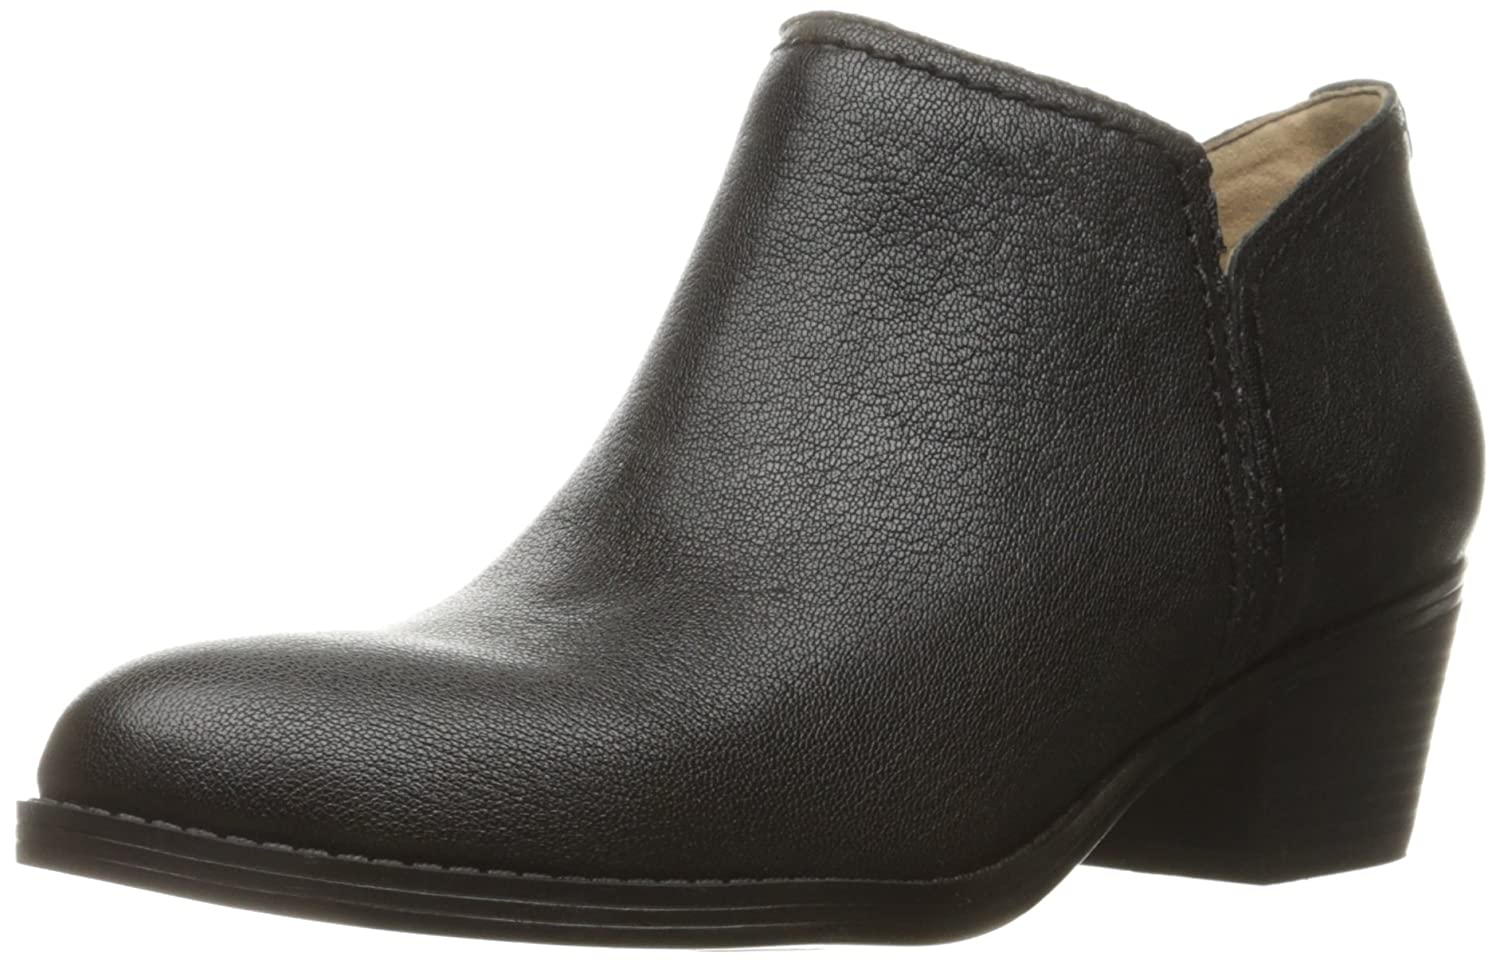 Naturalizer Women's Zarie Boot B019XI1V8E 6 W US|Black